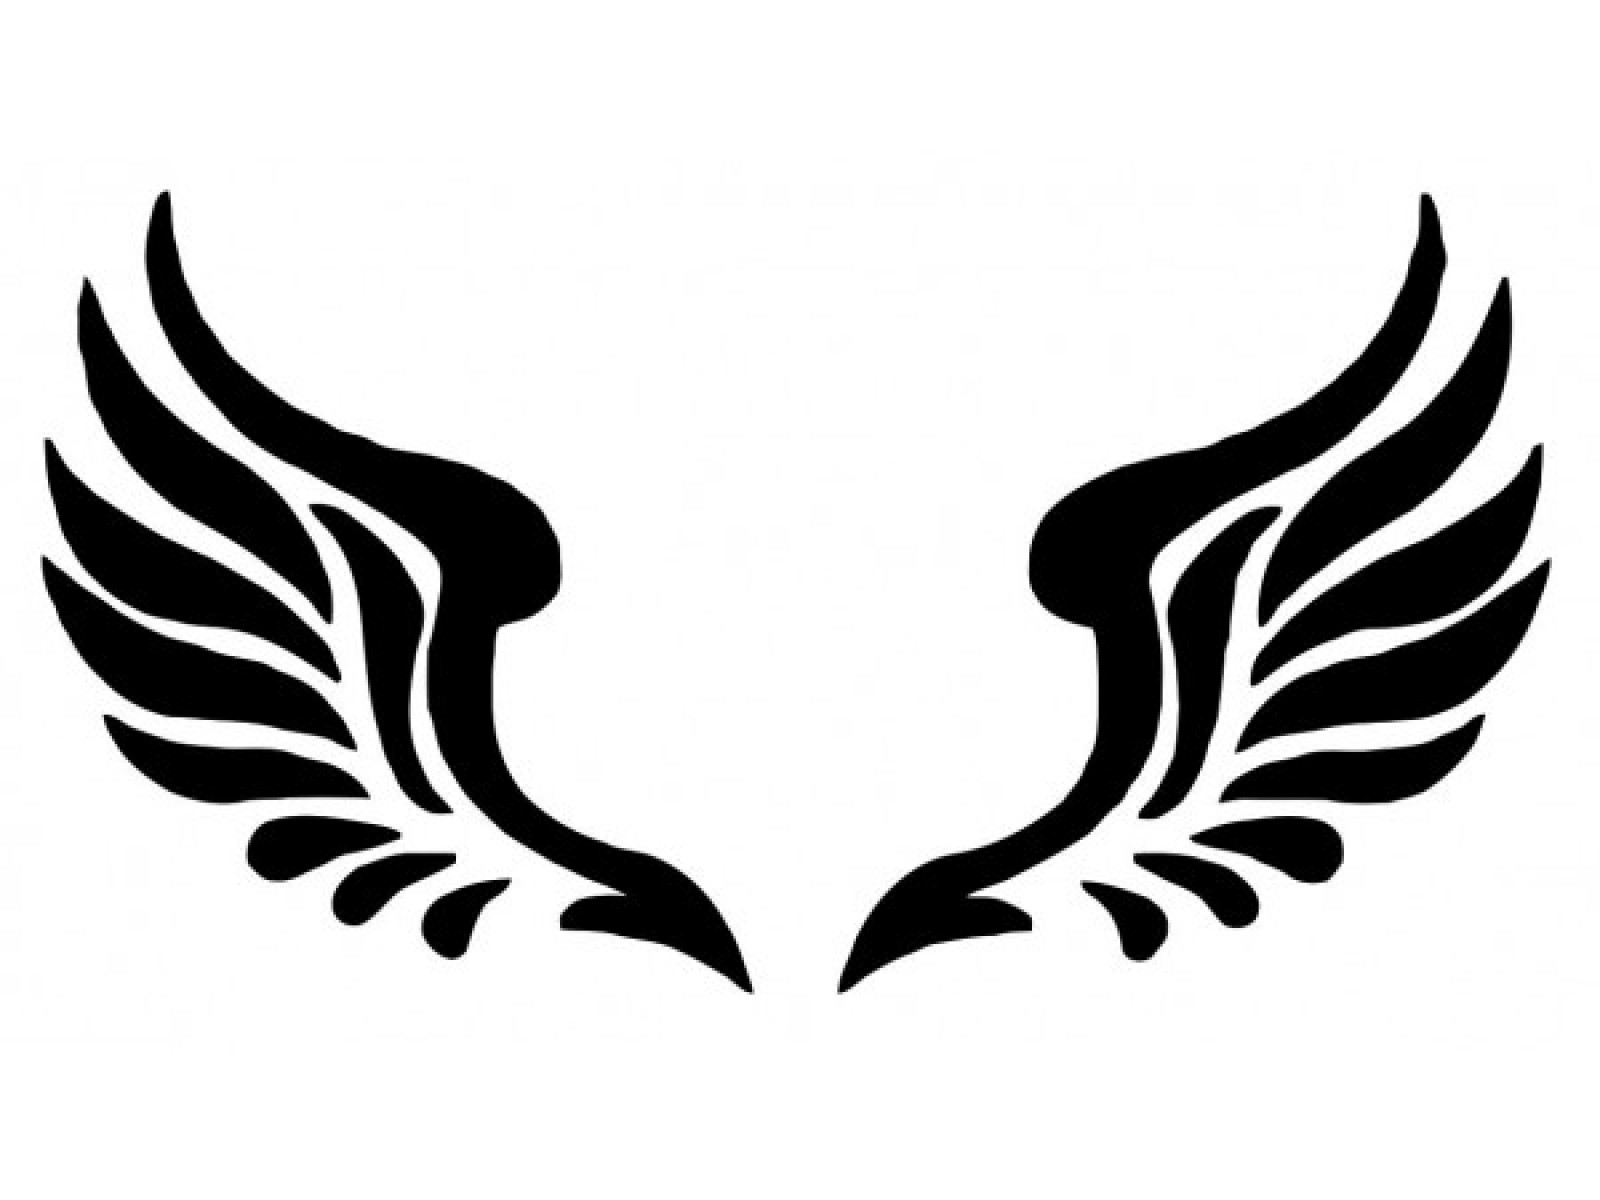 1600x1200 Curved Angel Wings Silhouette Clipart